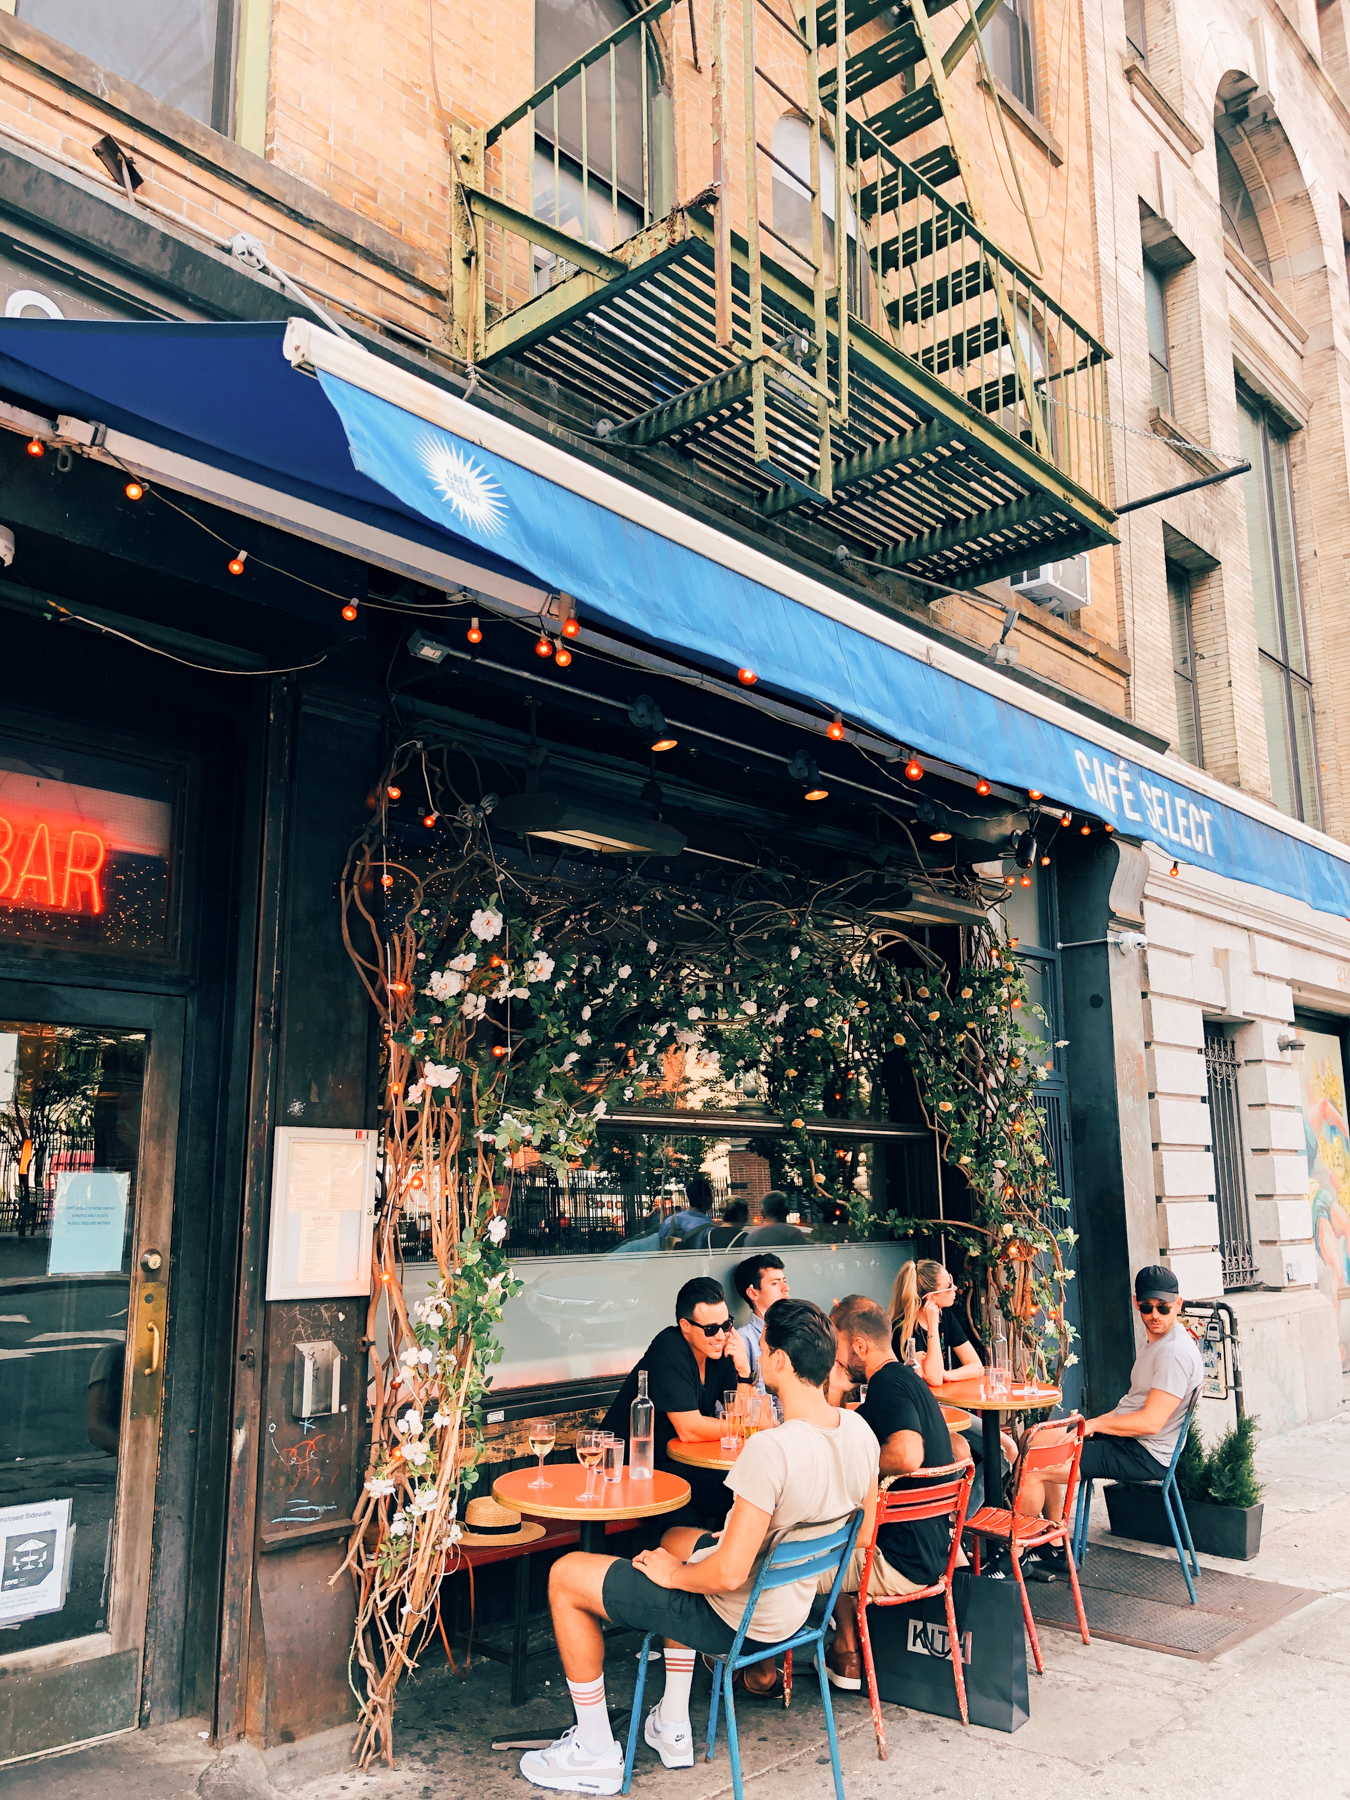 Cafe Select is a perfect for people watching in Soho